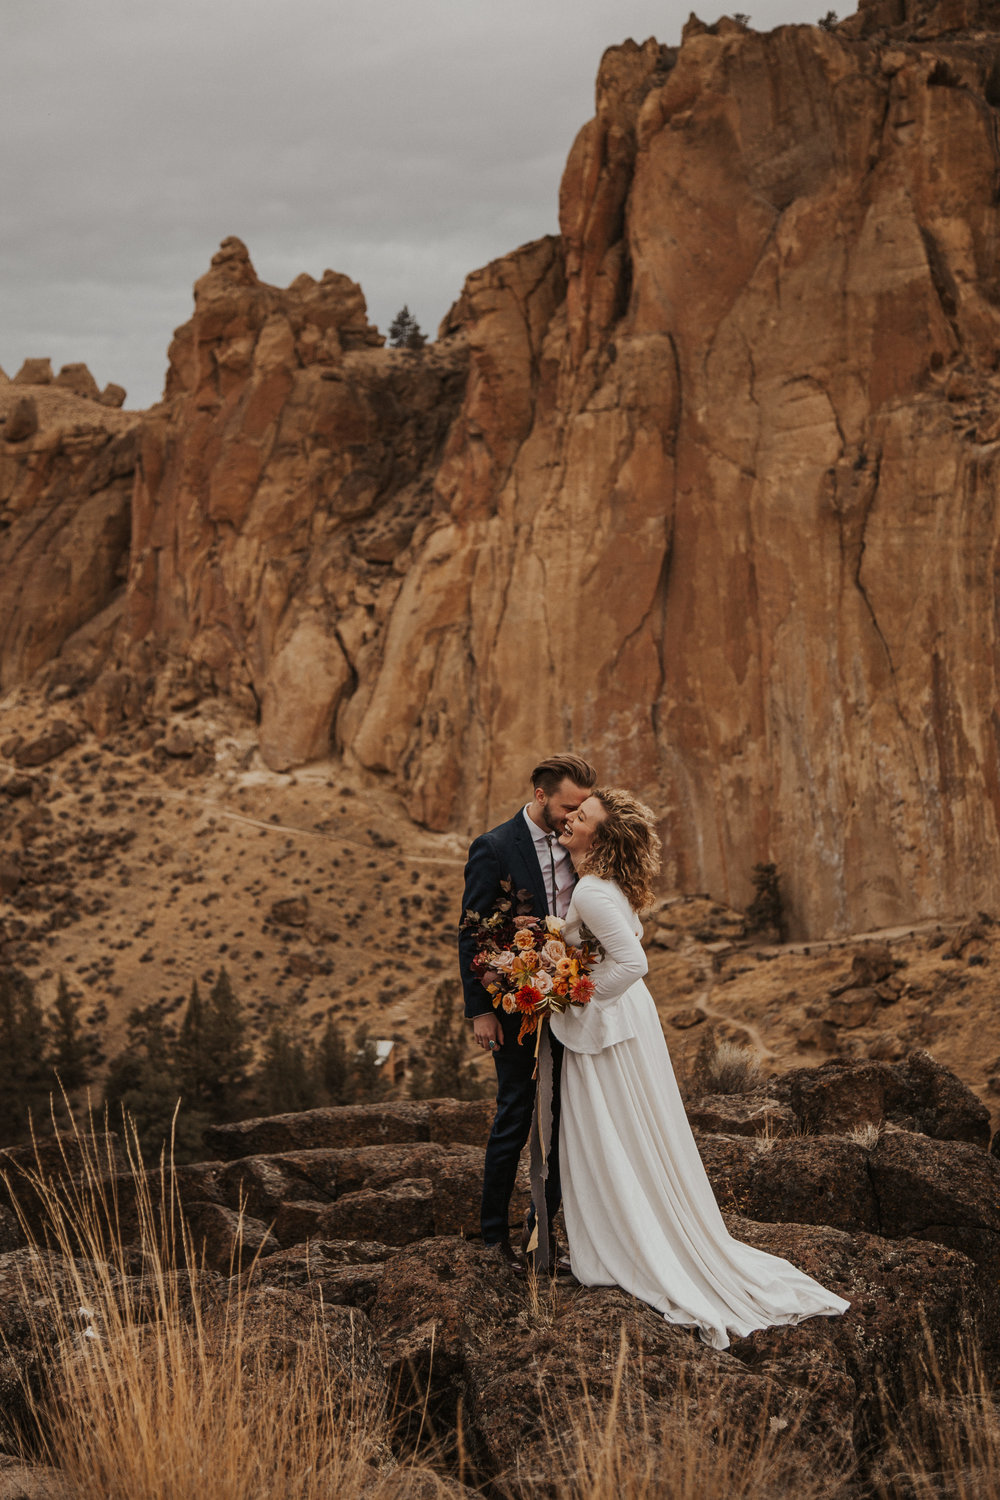 August-muse-images-smith-rock-elopement-oregon-bri-dylan-14.jpg